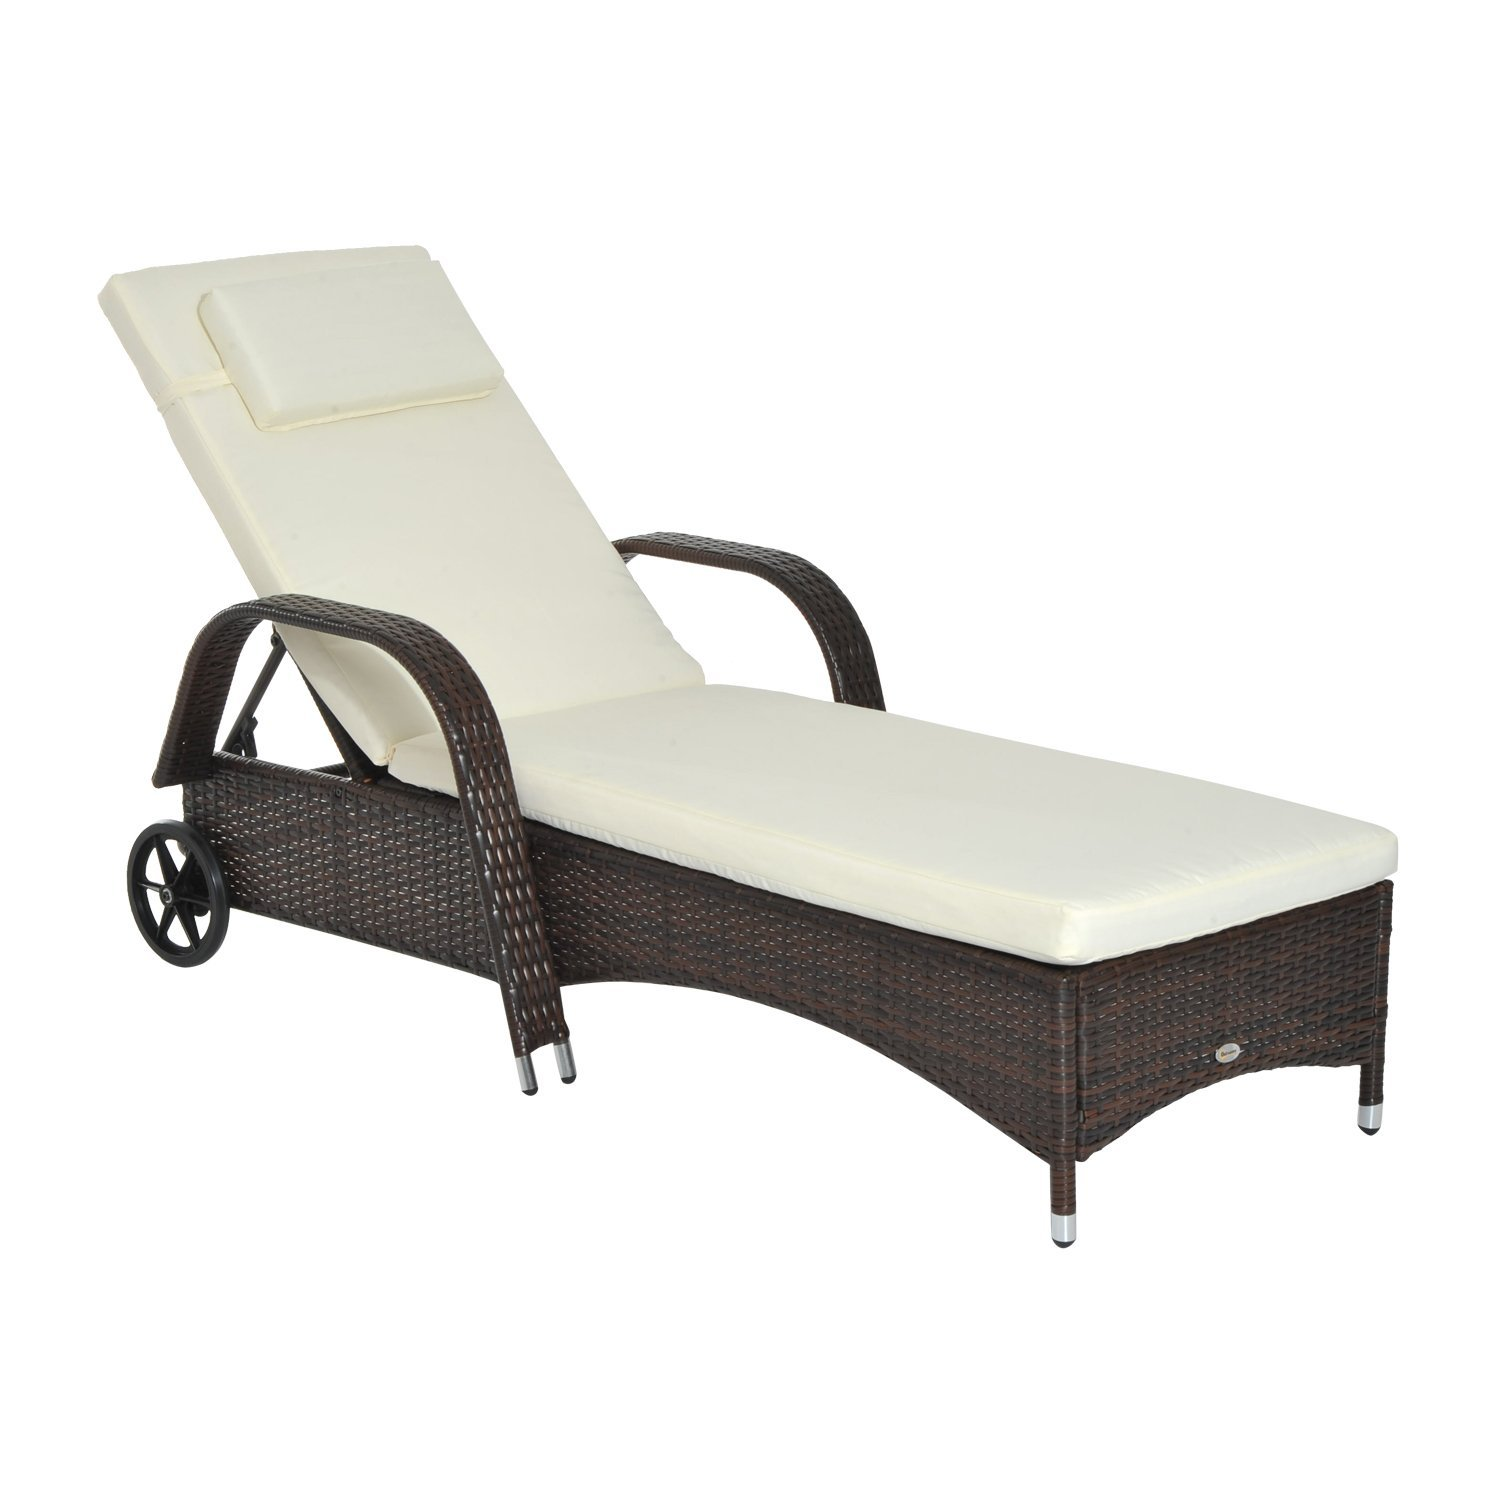 Outsunny Lettino Sdraio Prendisole Relax in Rattan, Marrone